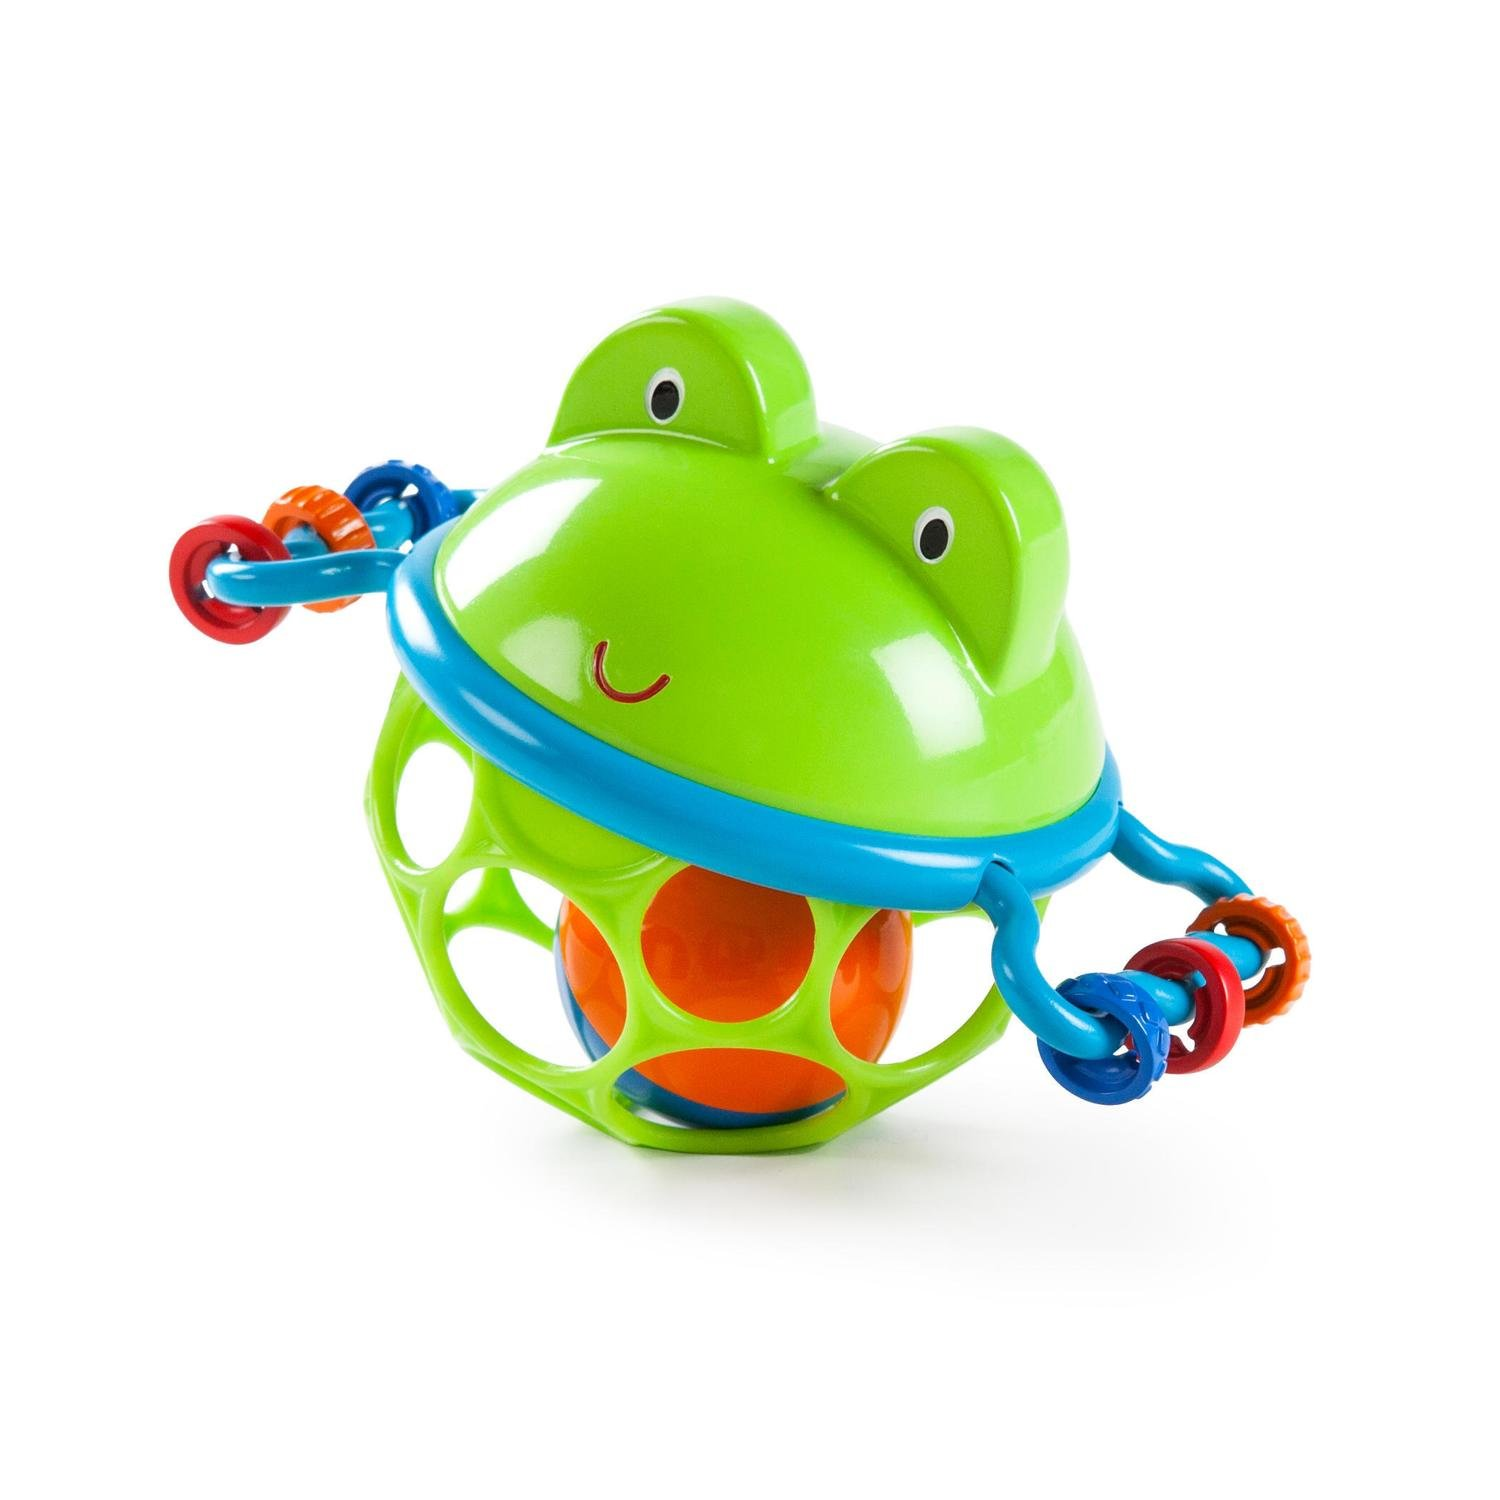 Grenouille O'ball